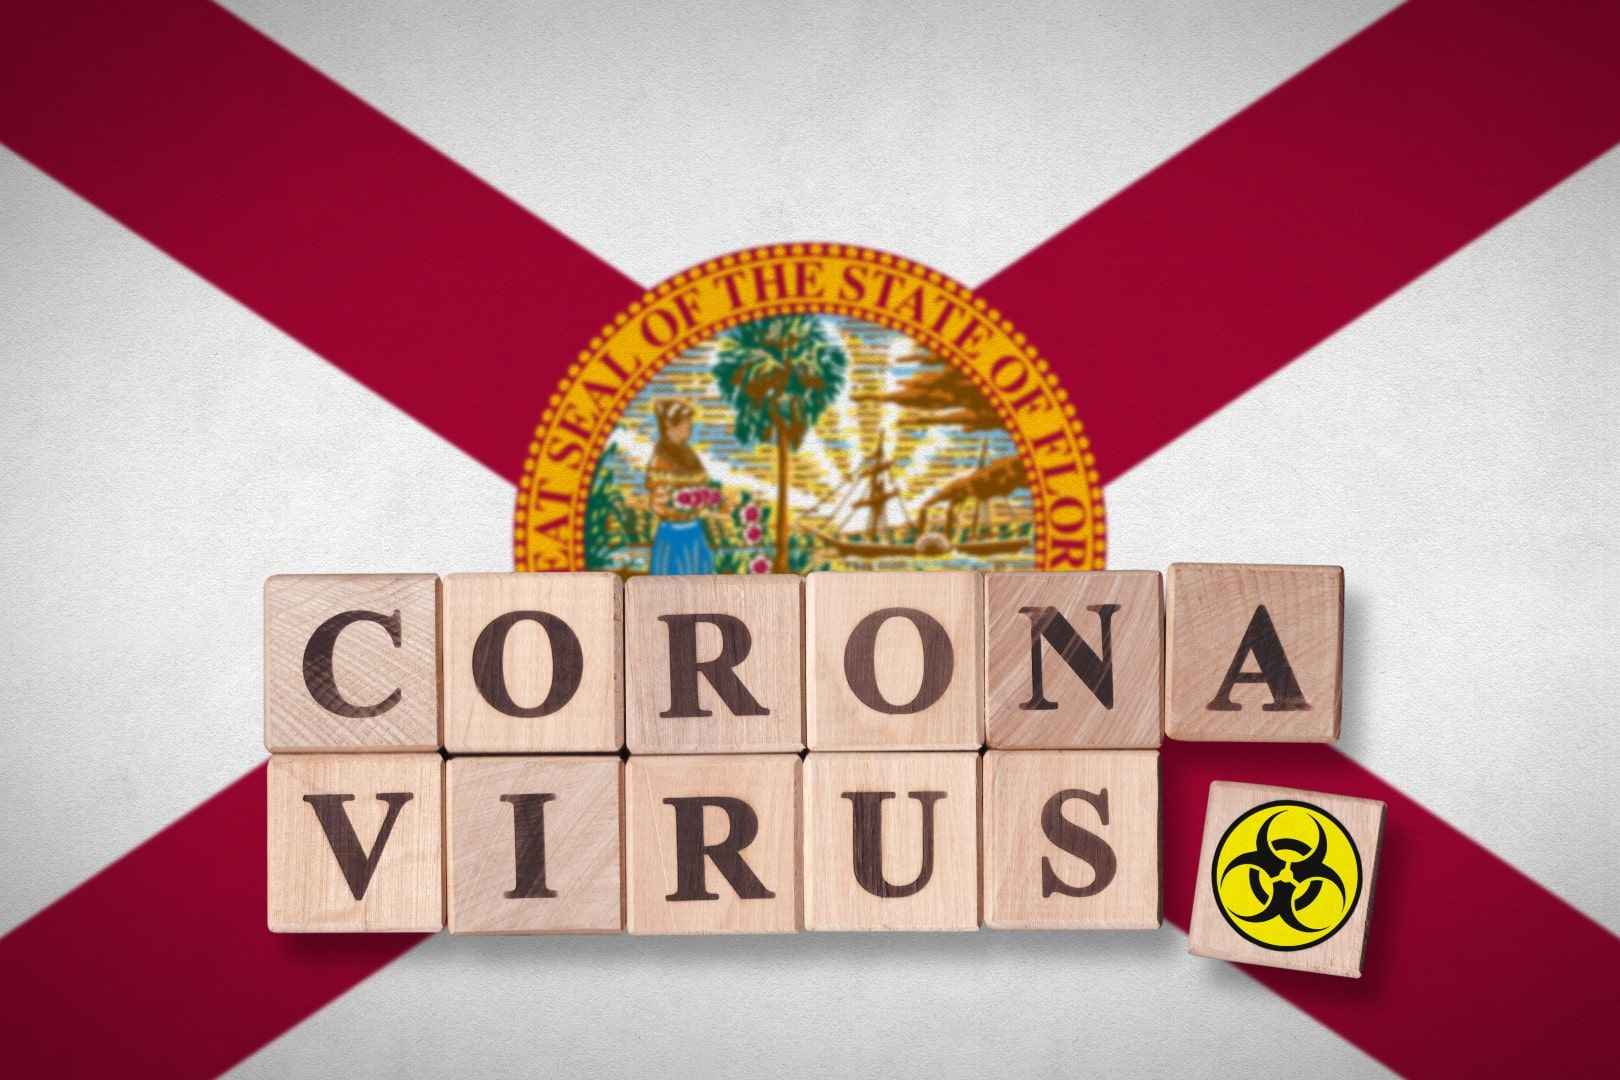 The state of Florida flag and wooden blocks with letters spelling CORONAVIRUS and quarantine symbol on it. Novel Coronavirus (2019-nCoV) concept for an outbreak occurs in Florida, US.